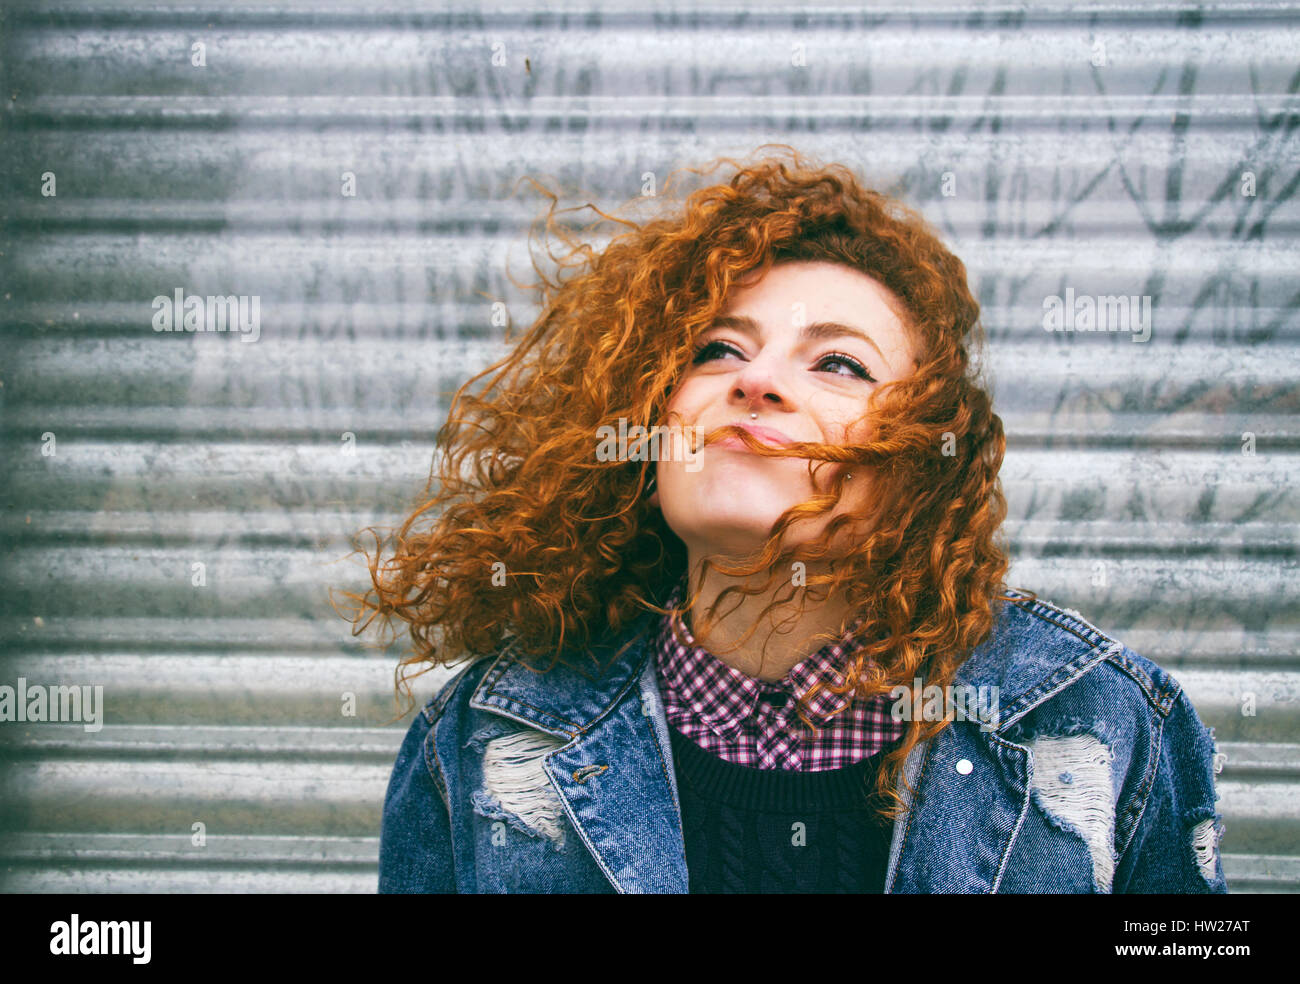 Portrait of a young redhead grunge woman Stock Photo